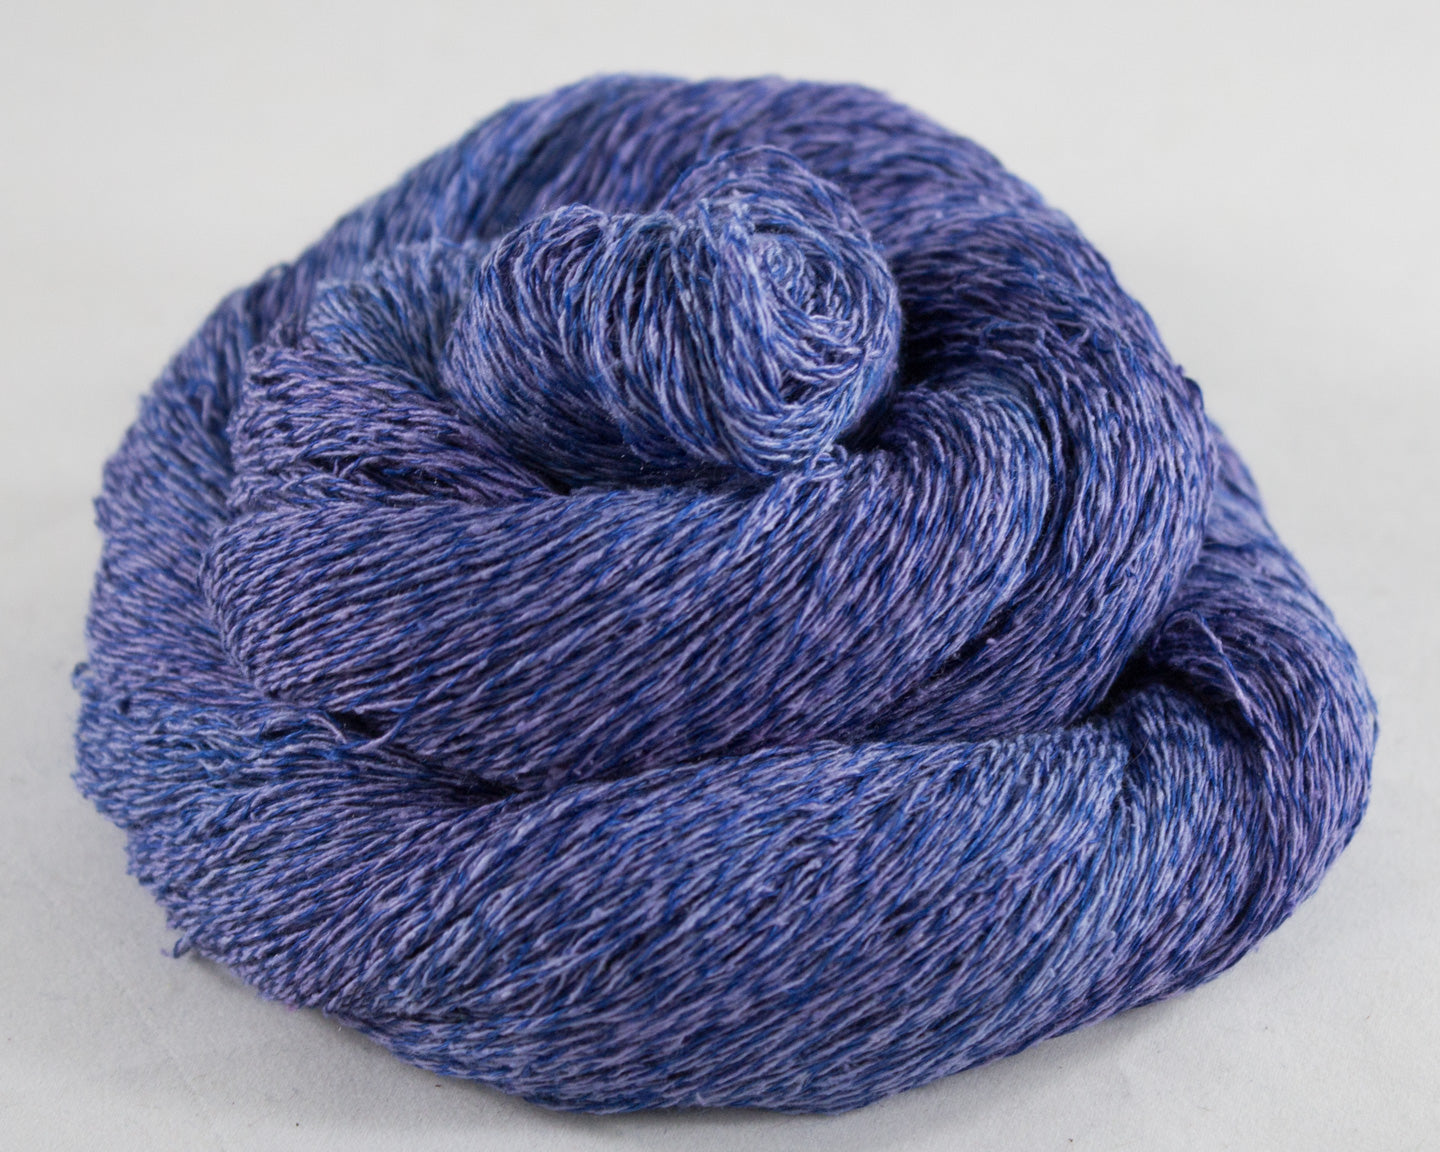 Lace Weight Linen/Silk Yarn - purple